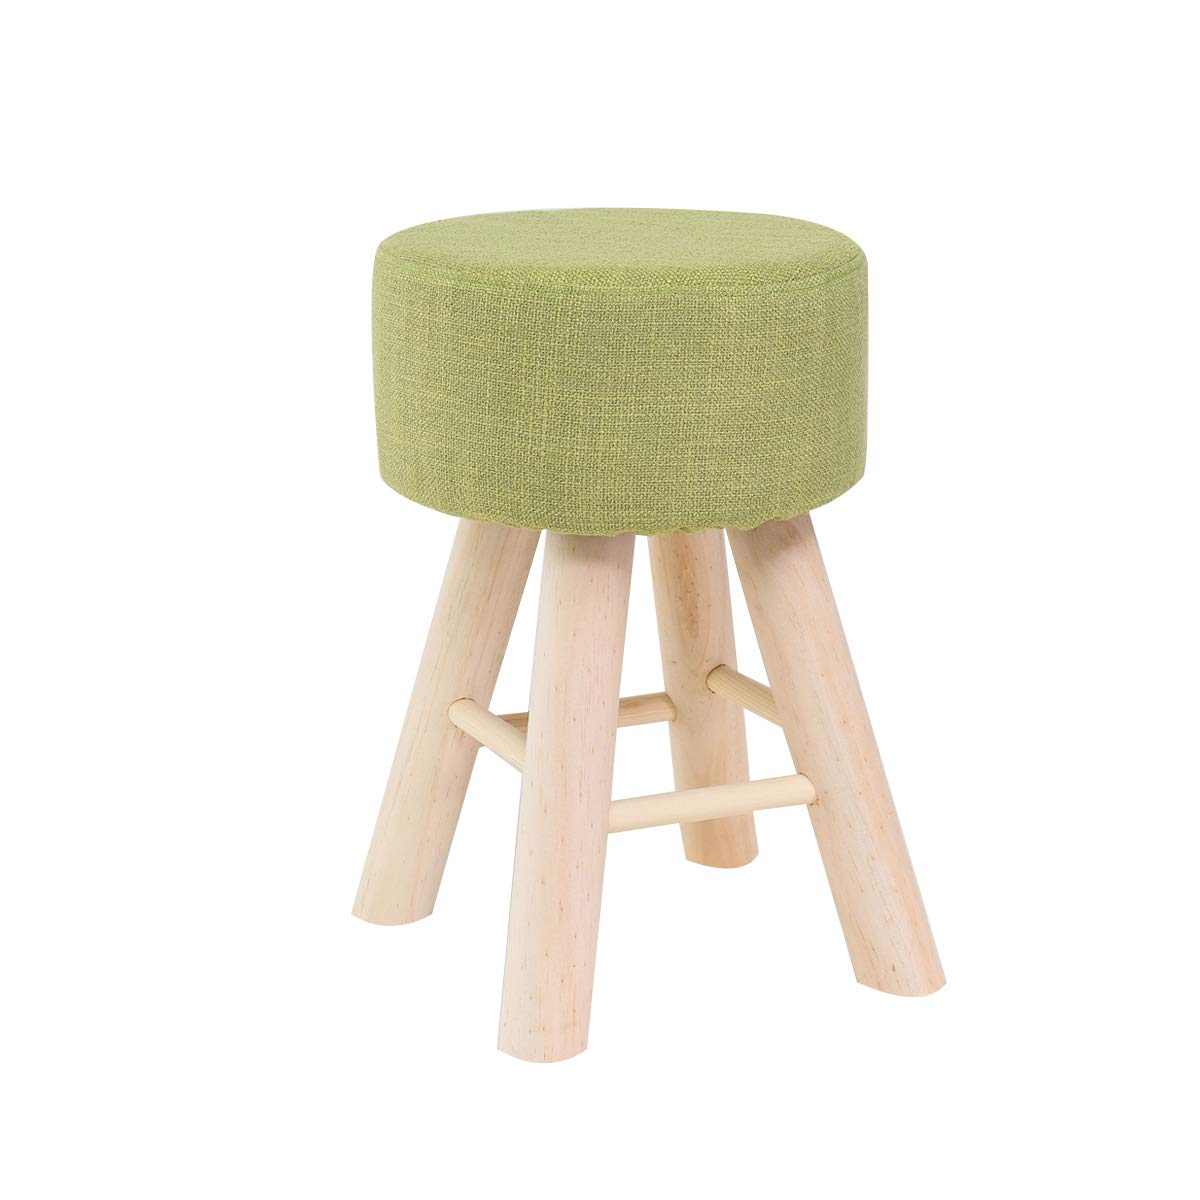 B Vanity Seat Stool Makeup Dressing Stool Solid Wood Small Stool Linen Change shoes Bench Living Room Kitchen Chair (Height 18.1in),b